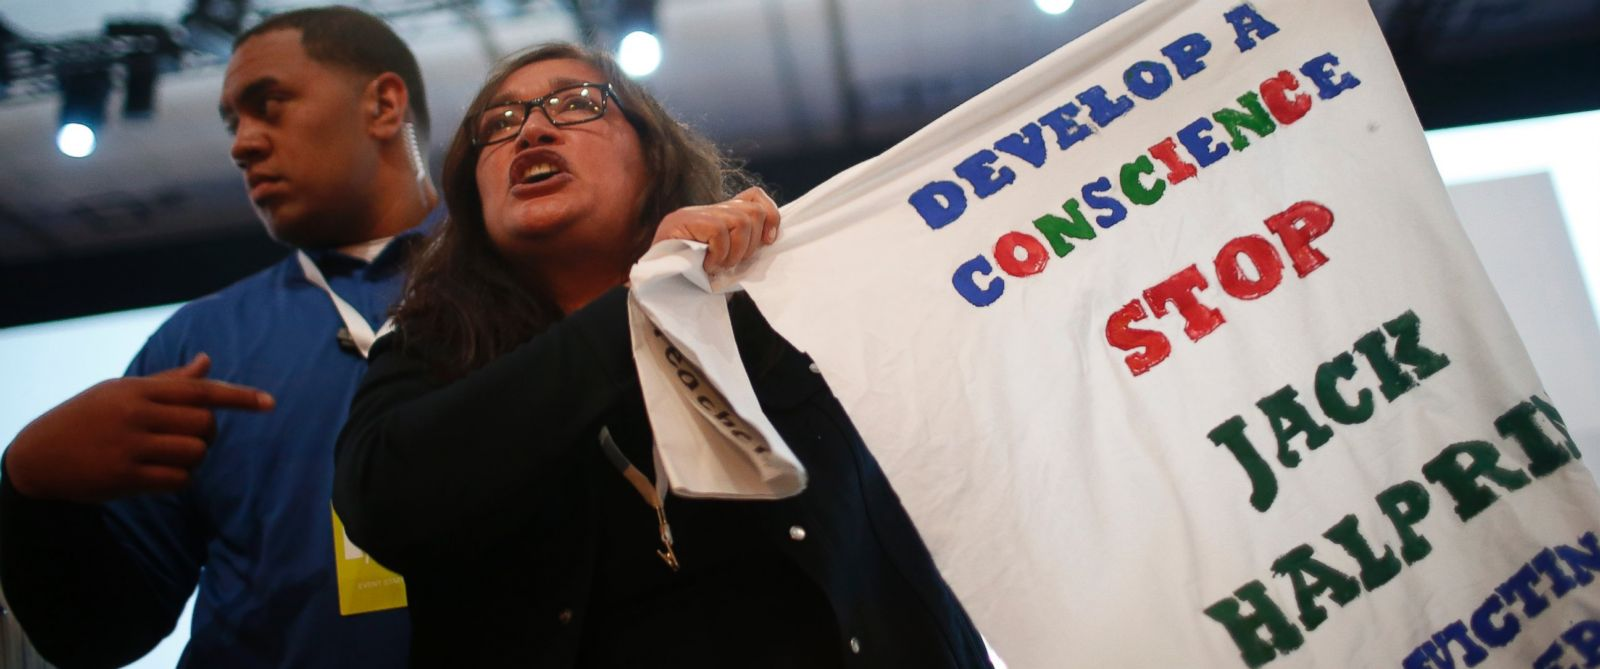 PHOTO: A demonstrator waves a sign in protest of Google during the Google I/O Developers Conference